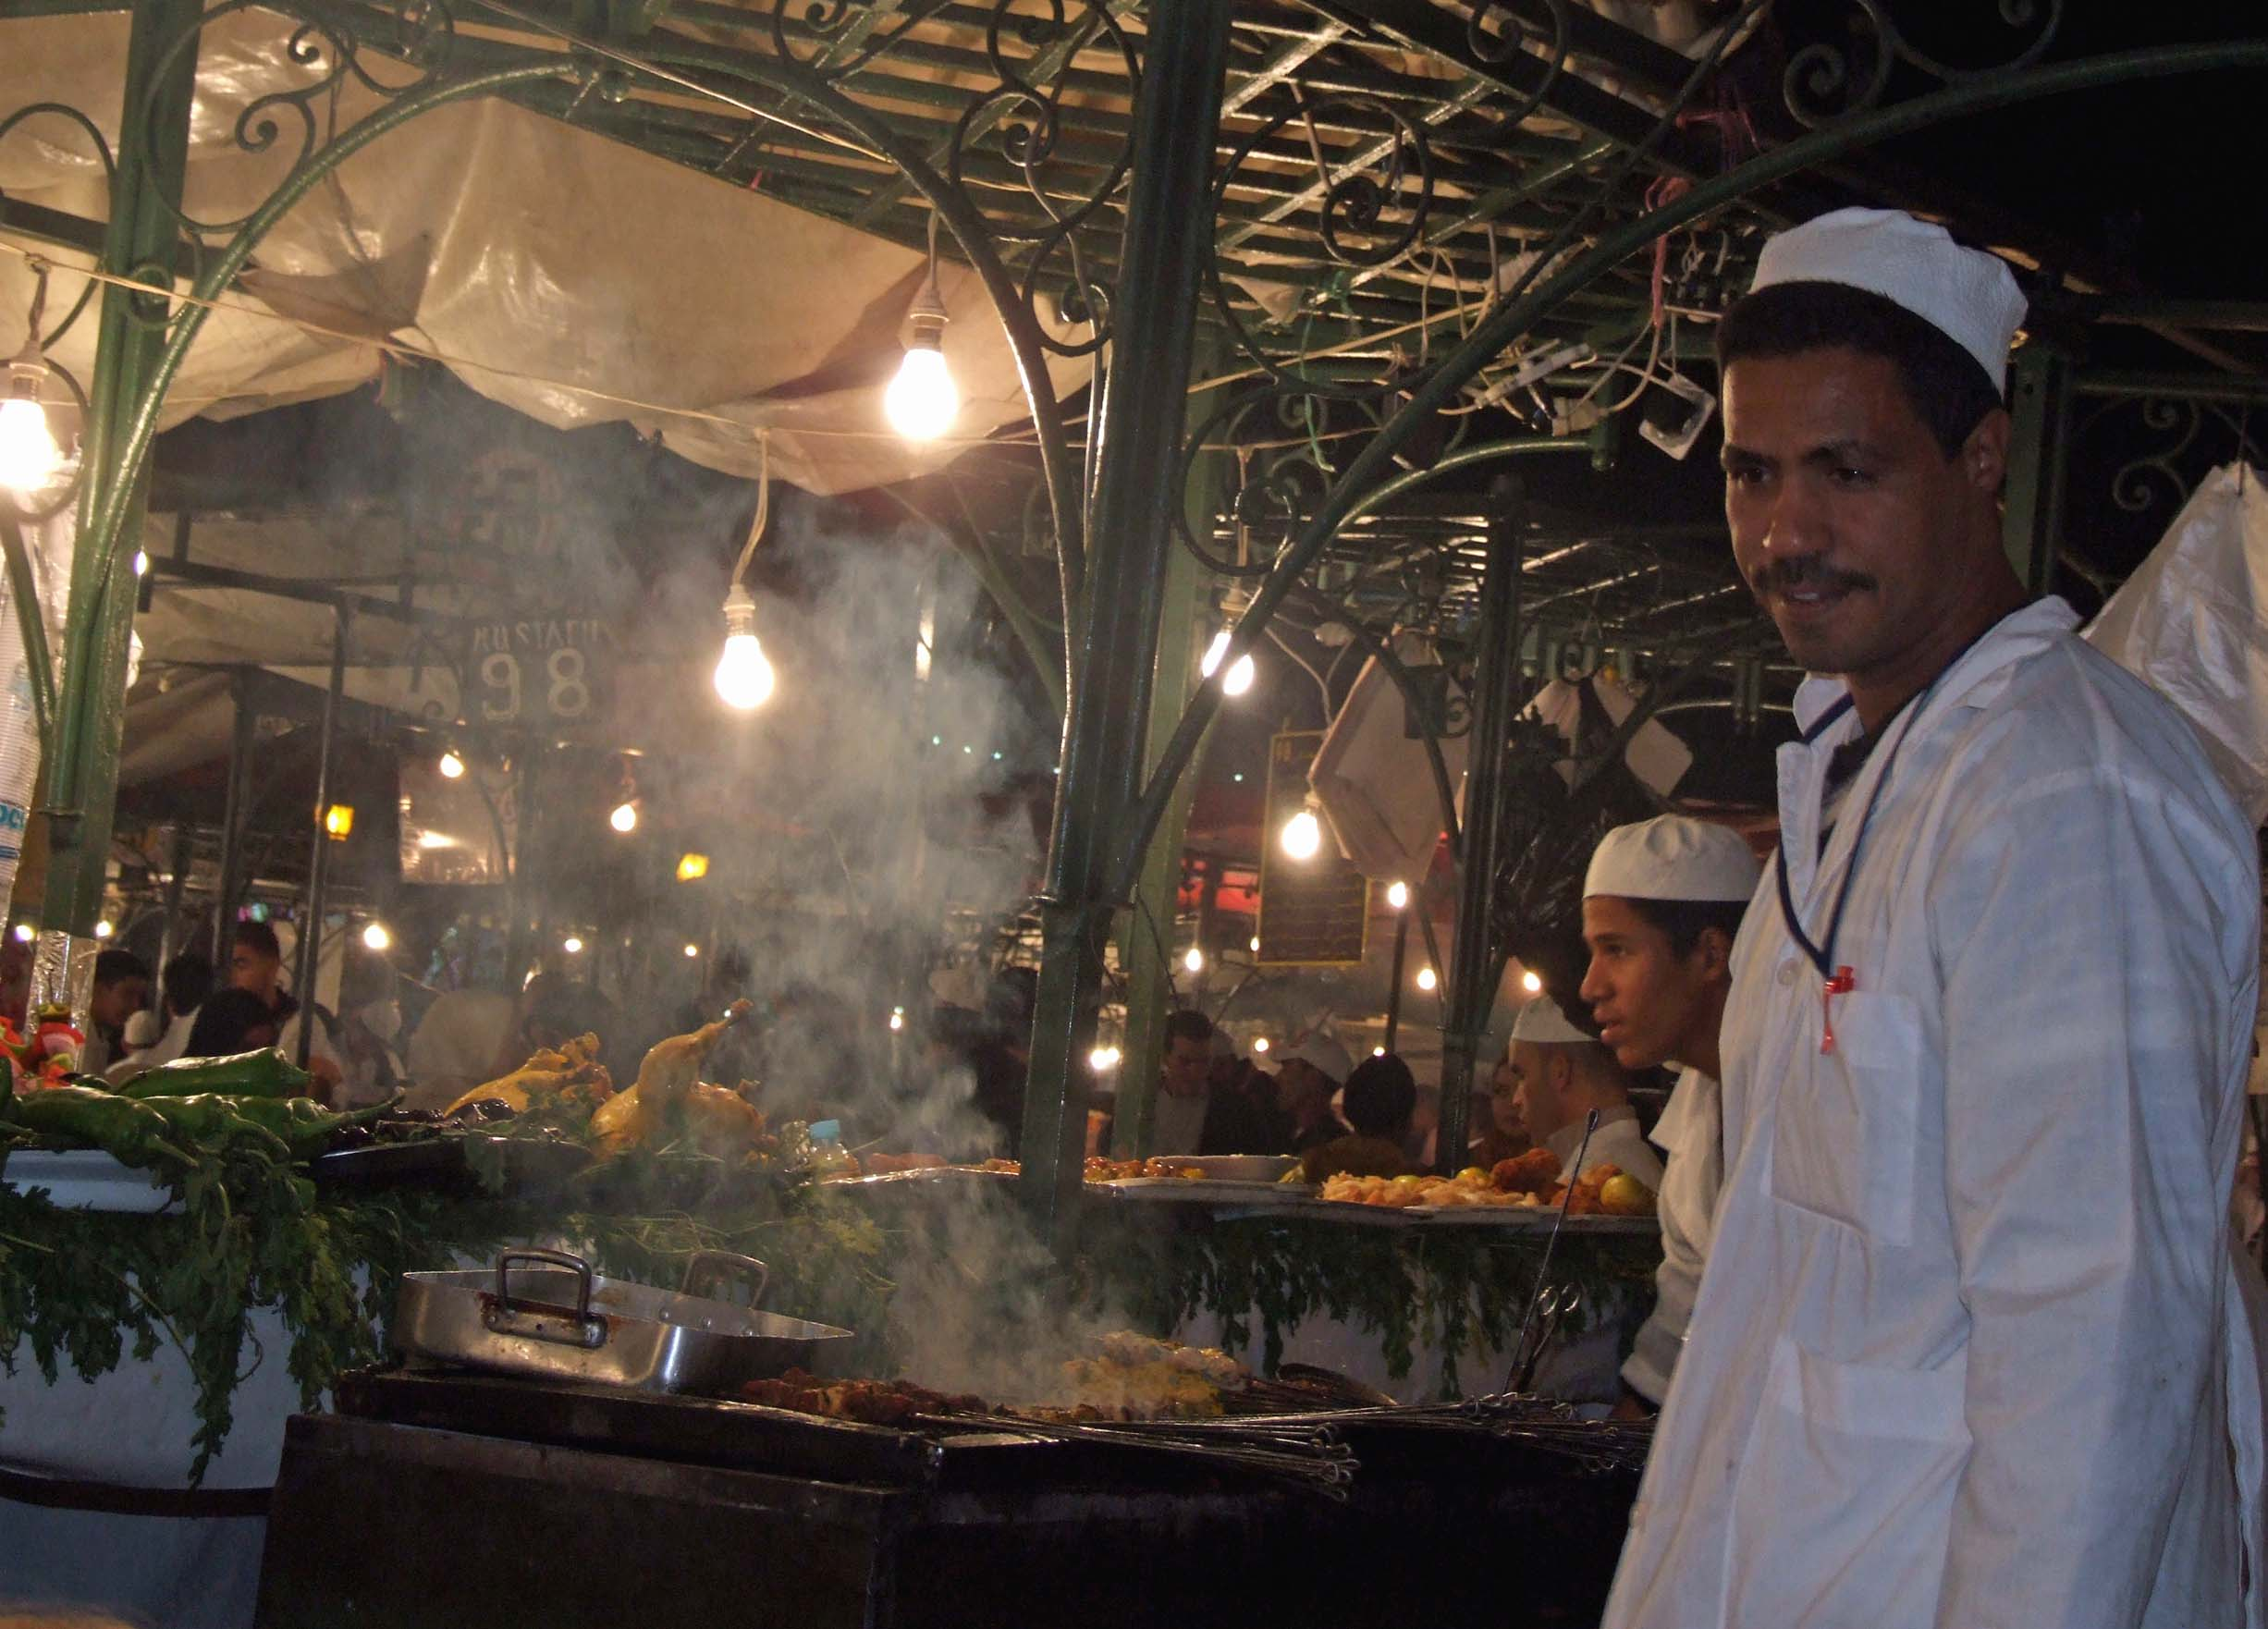 Men in white cooking on open grills